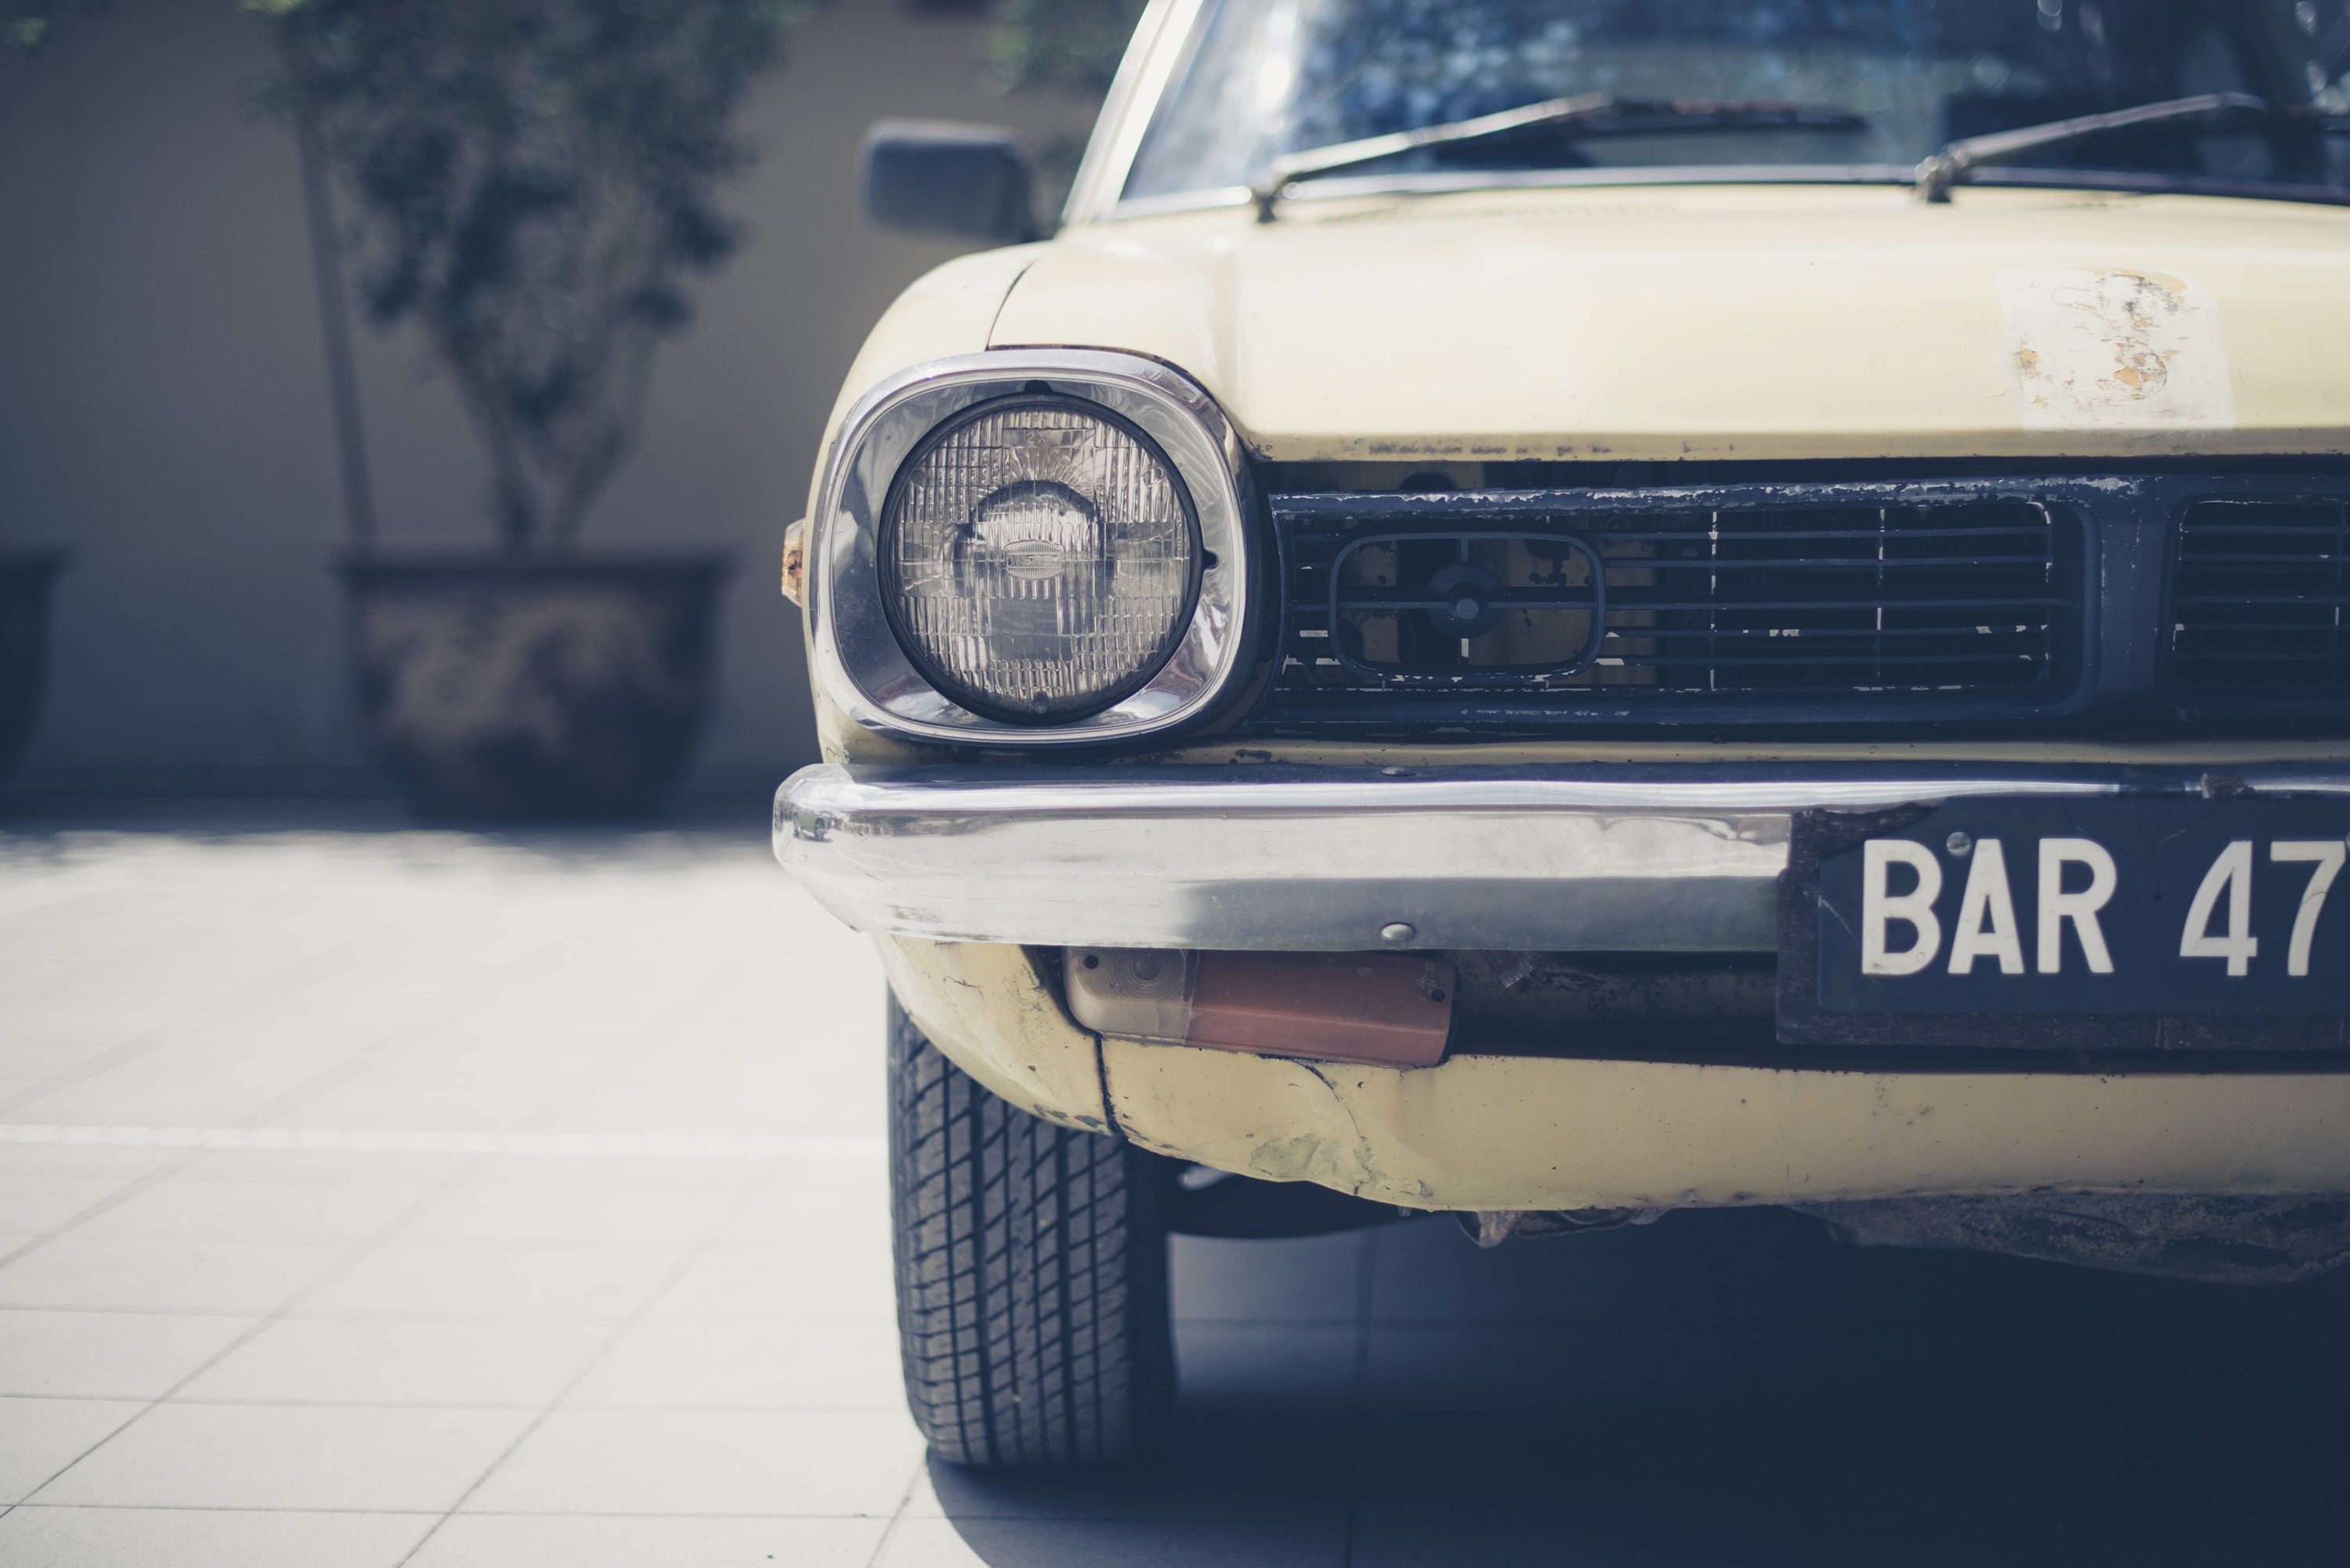 Retro white car with stylish headlight and grille